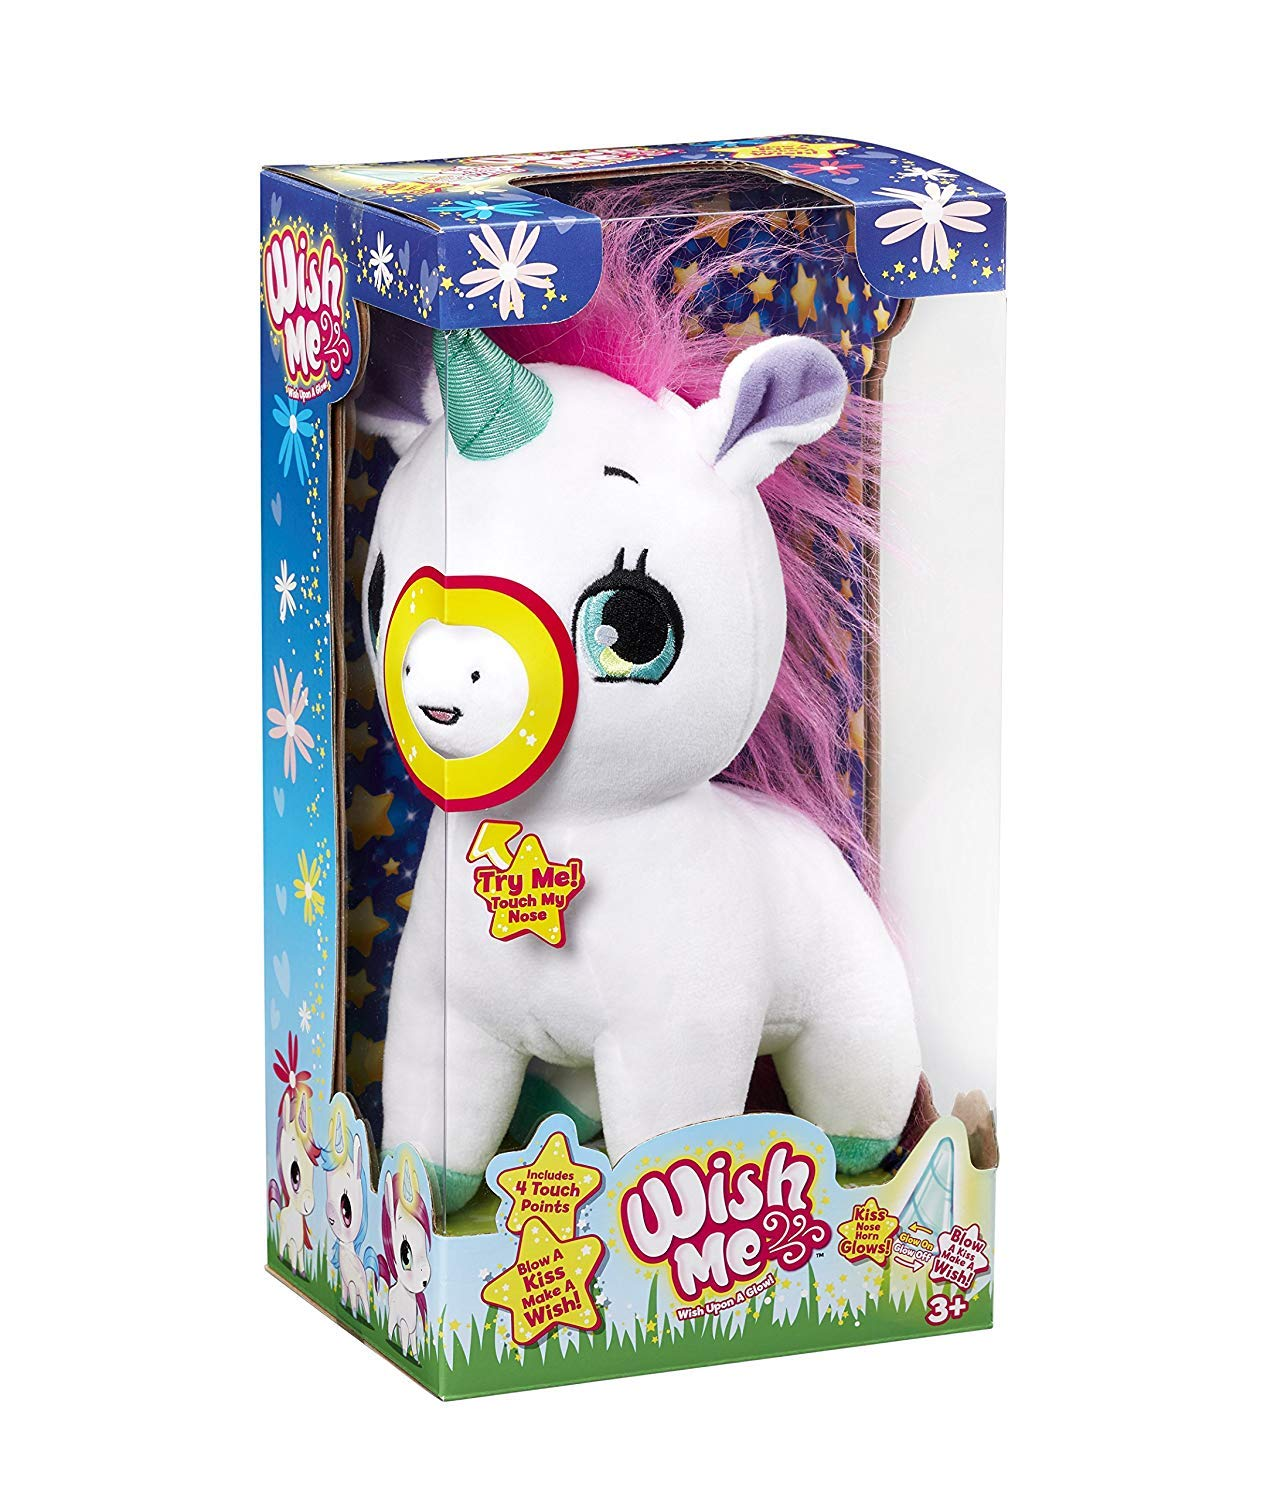 Amazon.com: Wish Me Pets - Pinky The Unicorn with Green Horn: Home & Kitchen